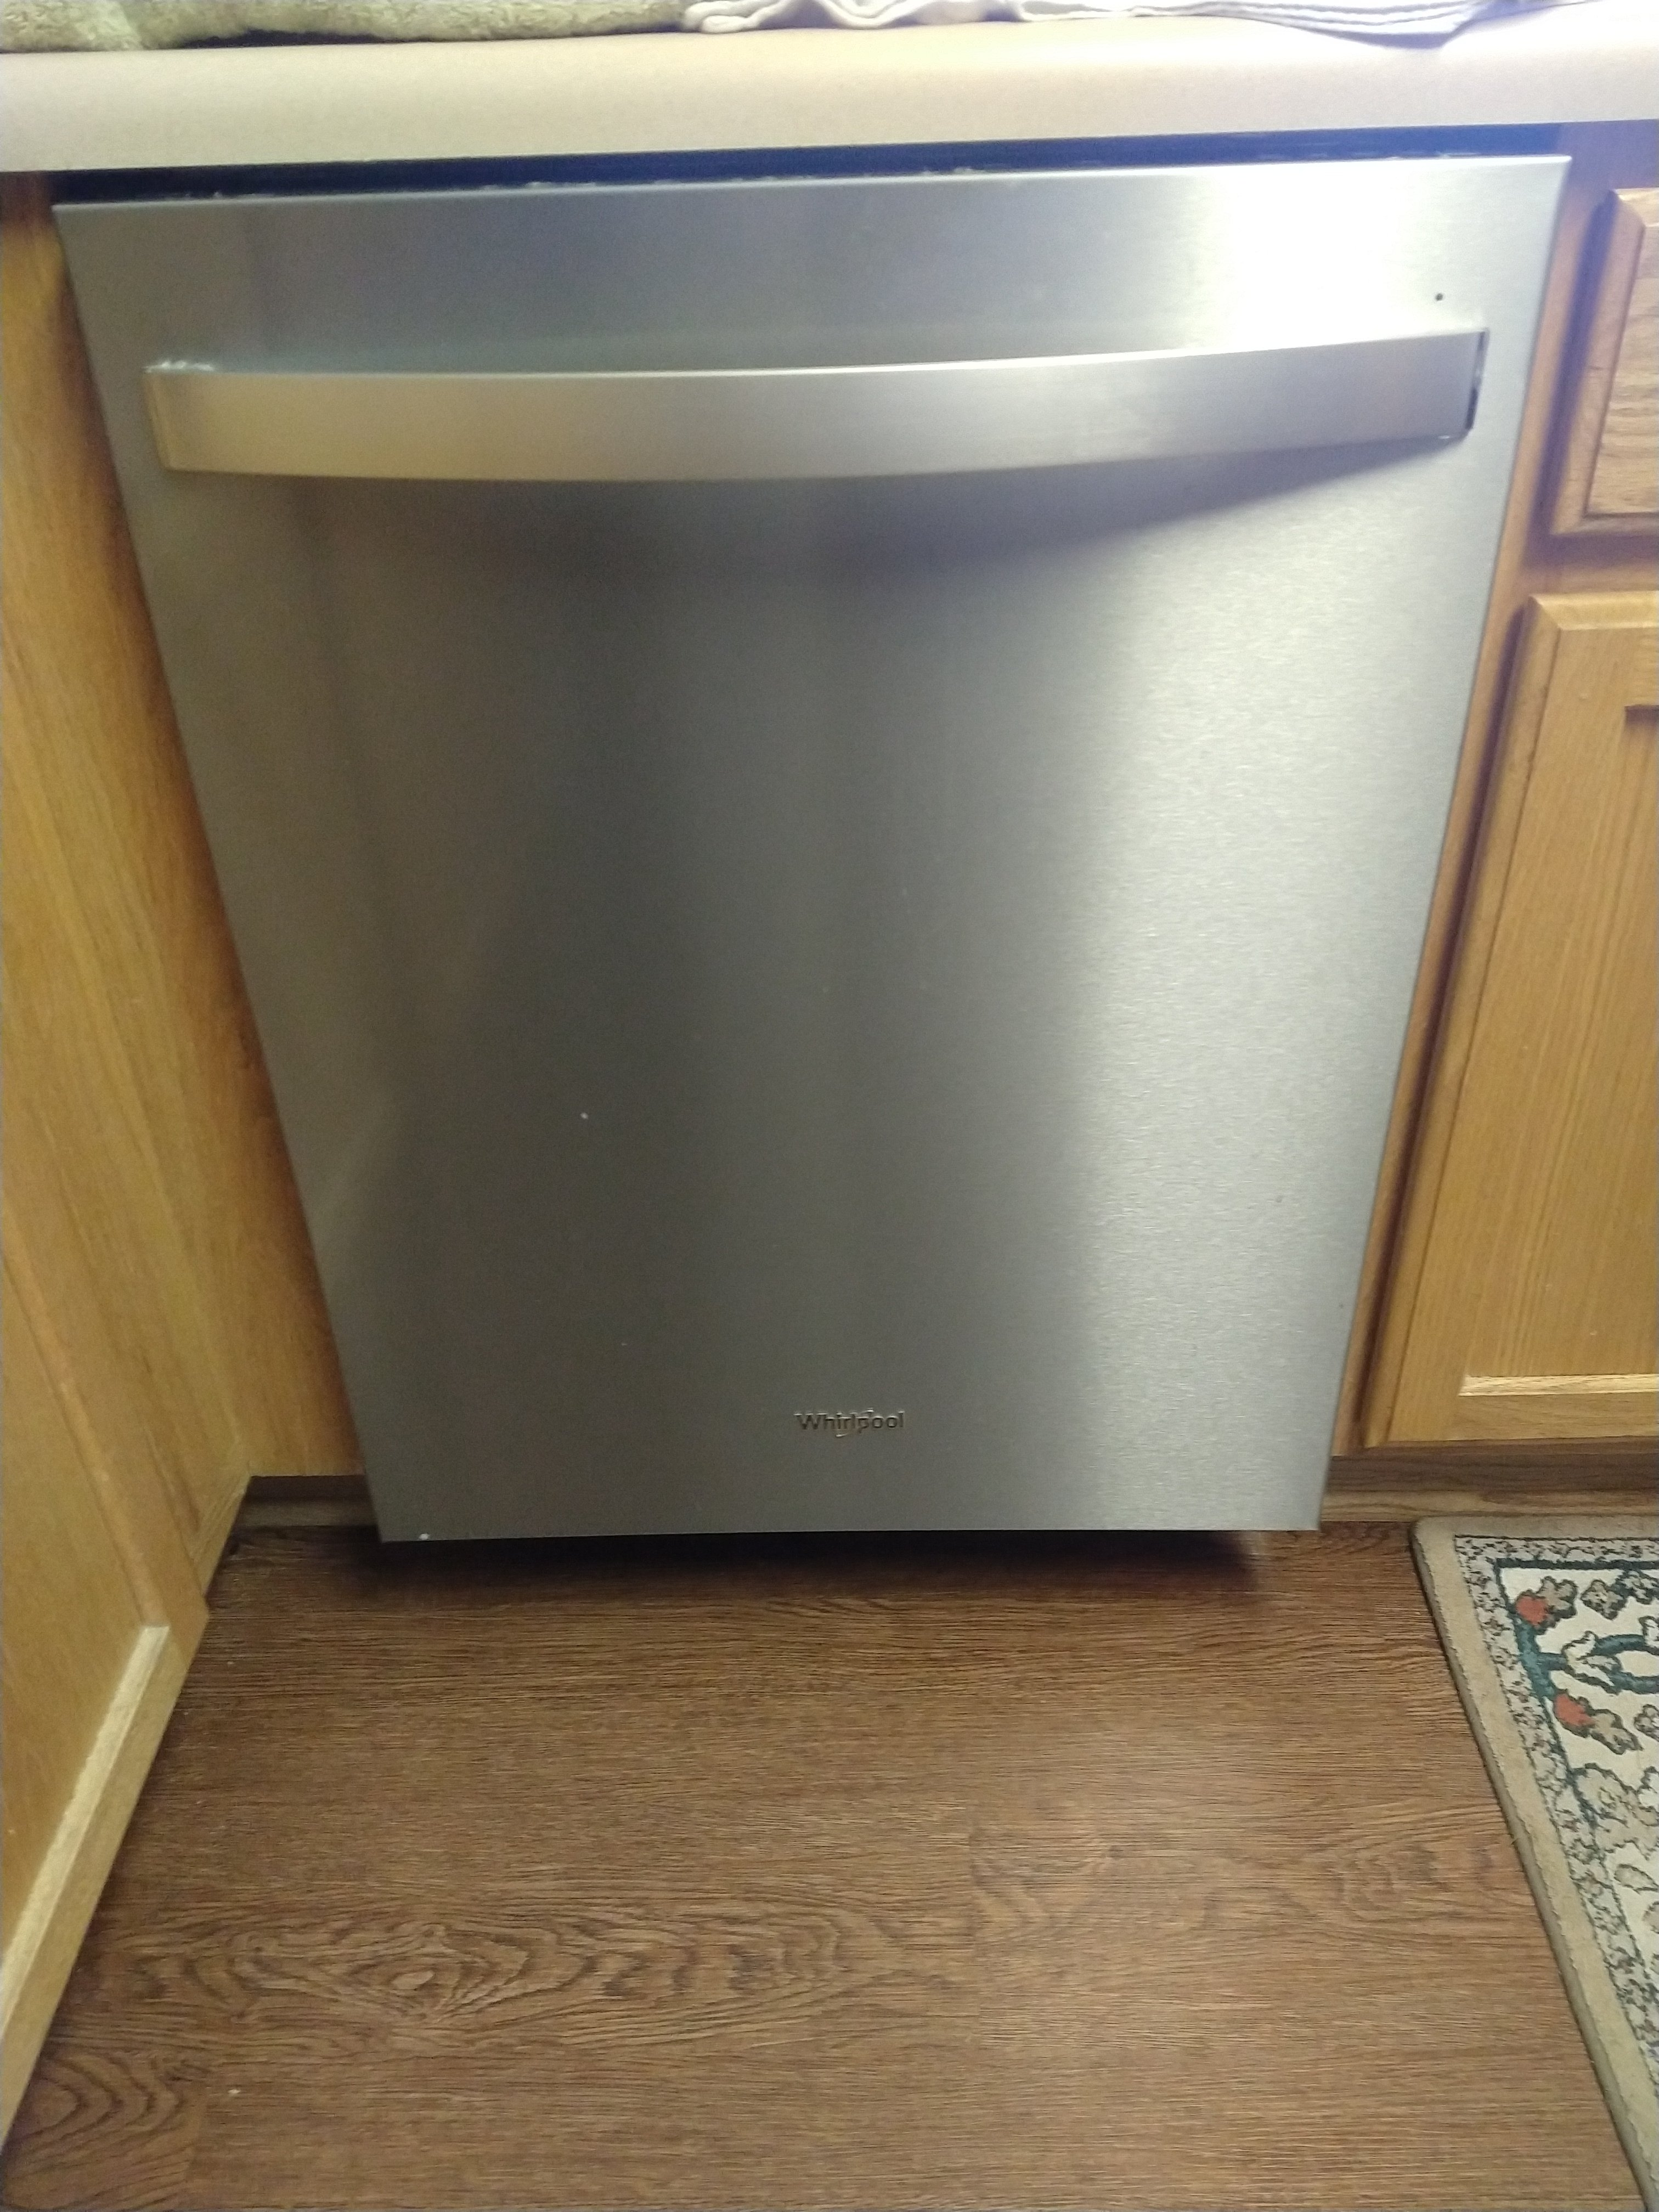 Whirlpool Dishwasher Repair Wdt730pahz0 Located In